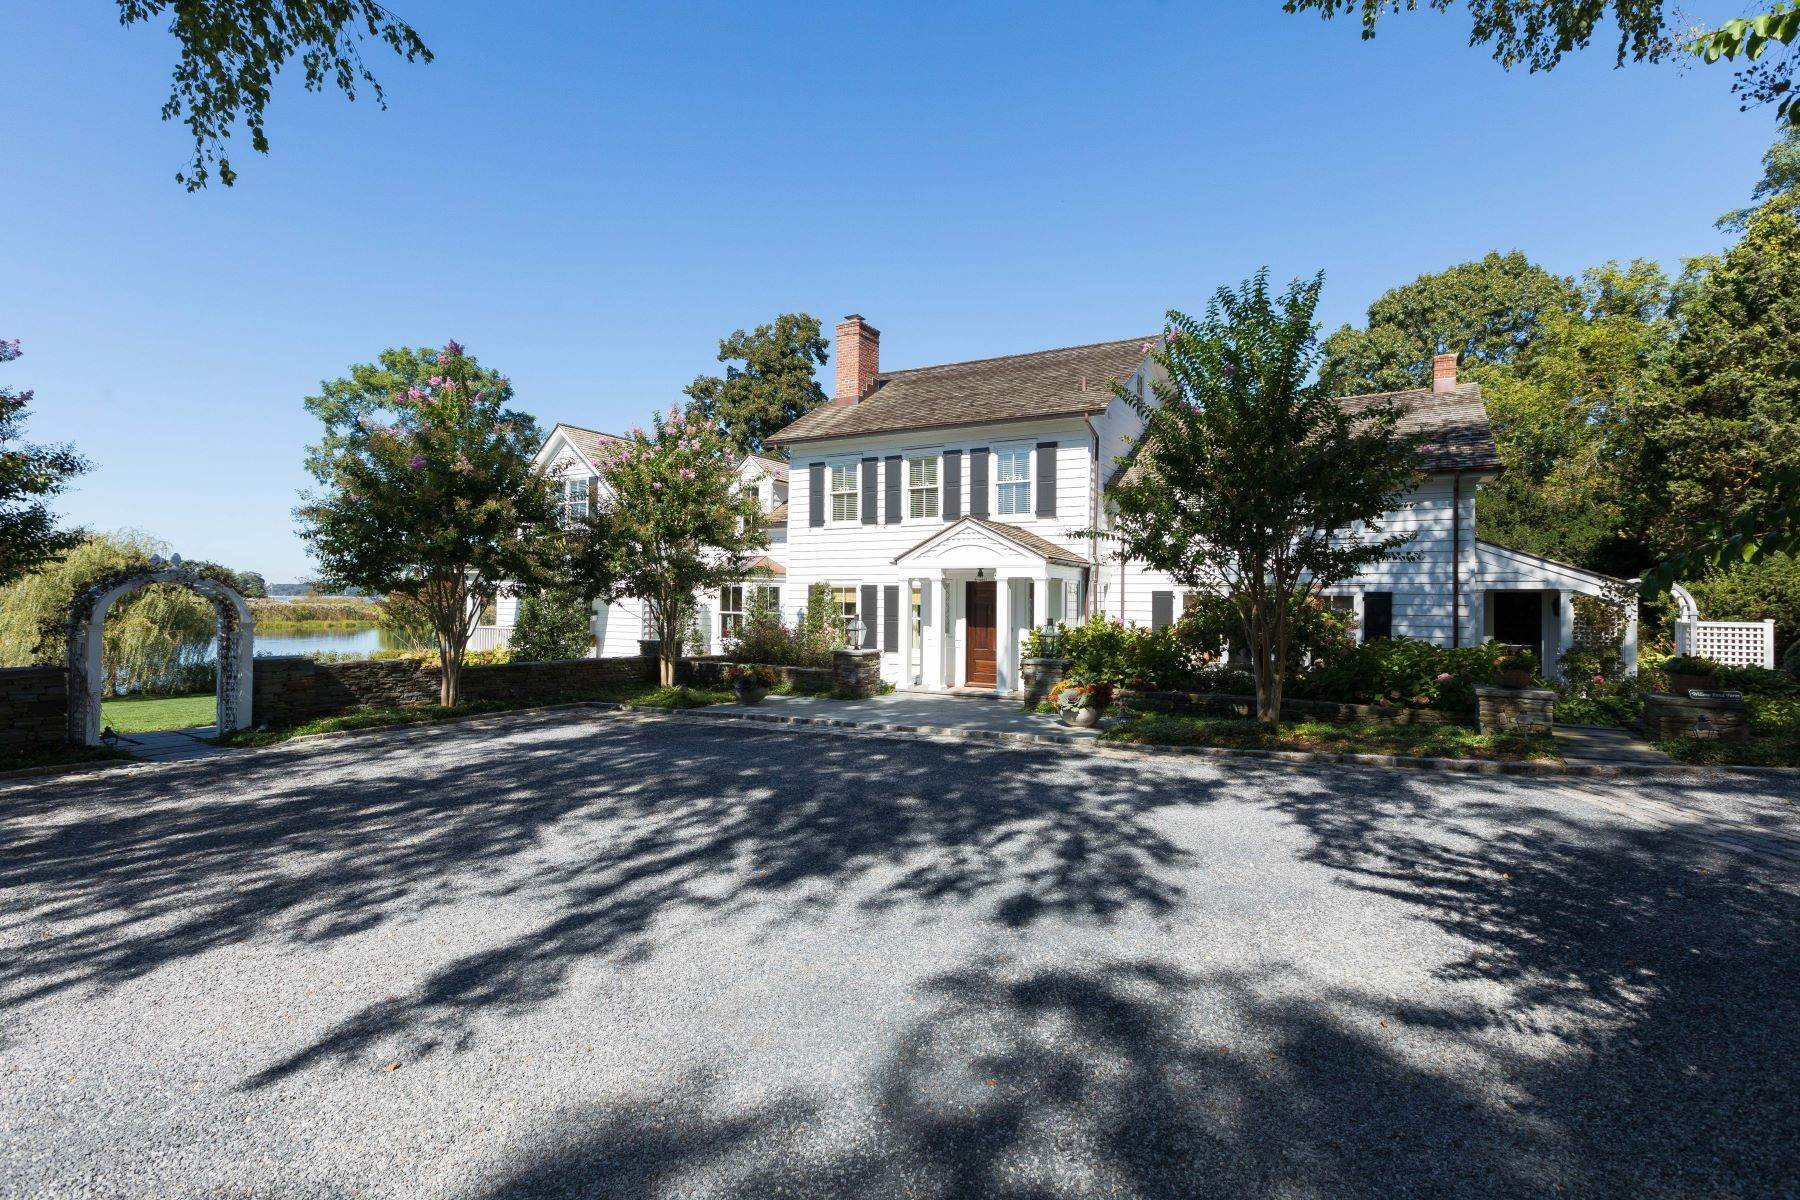 Single Family Homes for Sale at Vineyard Road, Huntington Bay, NY 11743 Vineyard Road Huntington Bay, New York 11743 United States